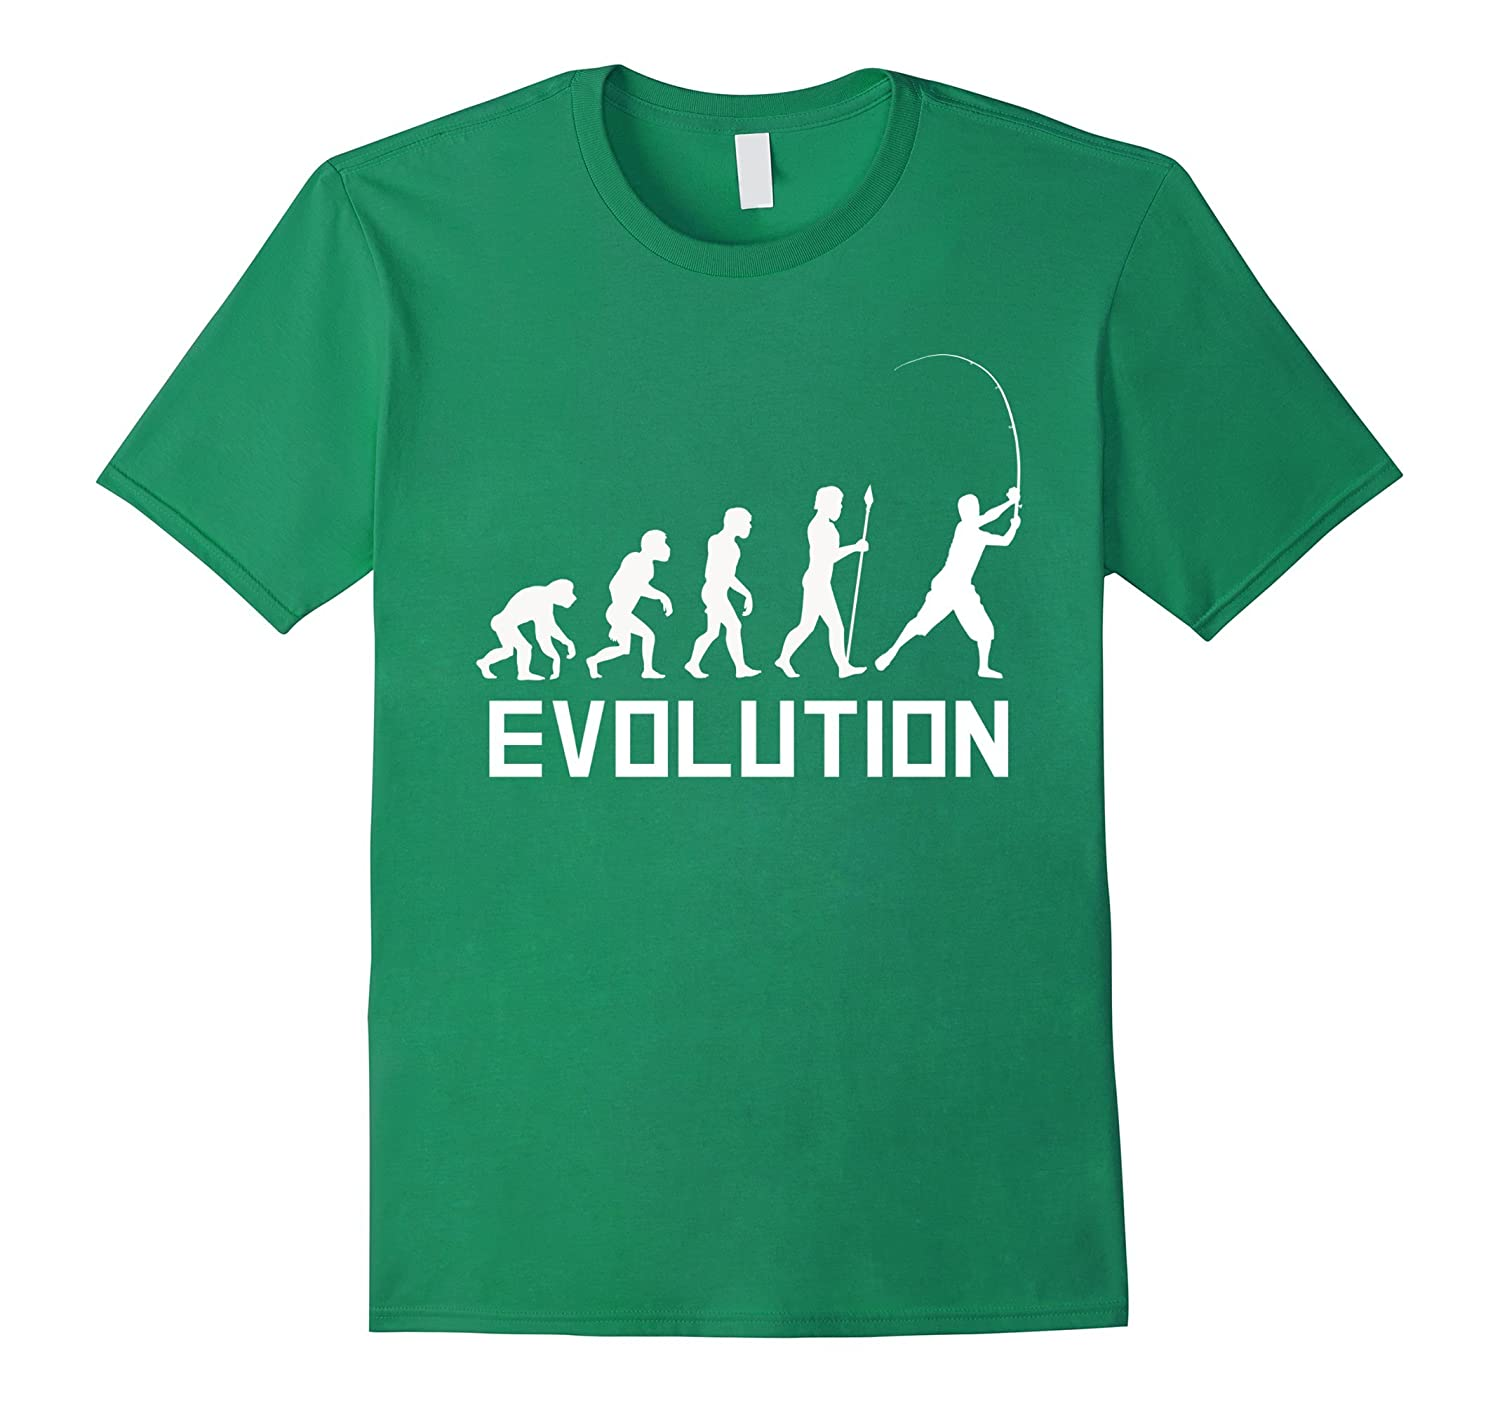 Fisherman evolution funny fishing shirt rt rateeshirt for Funny fishing t shirts